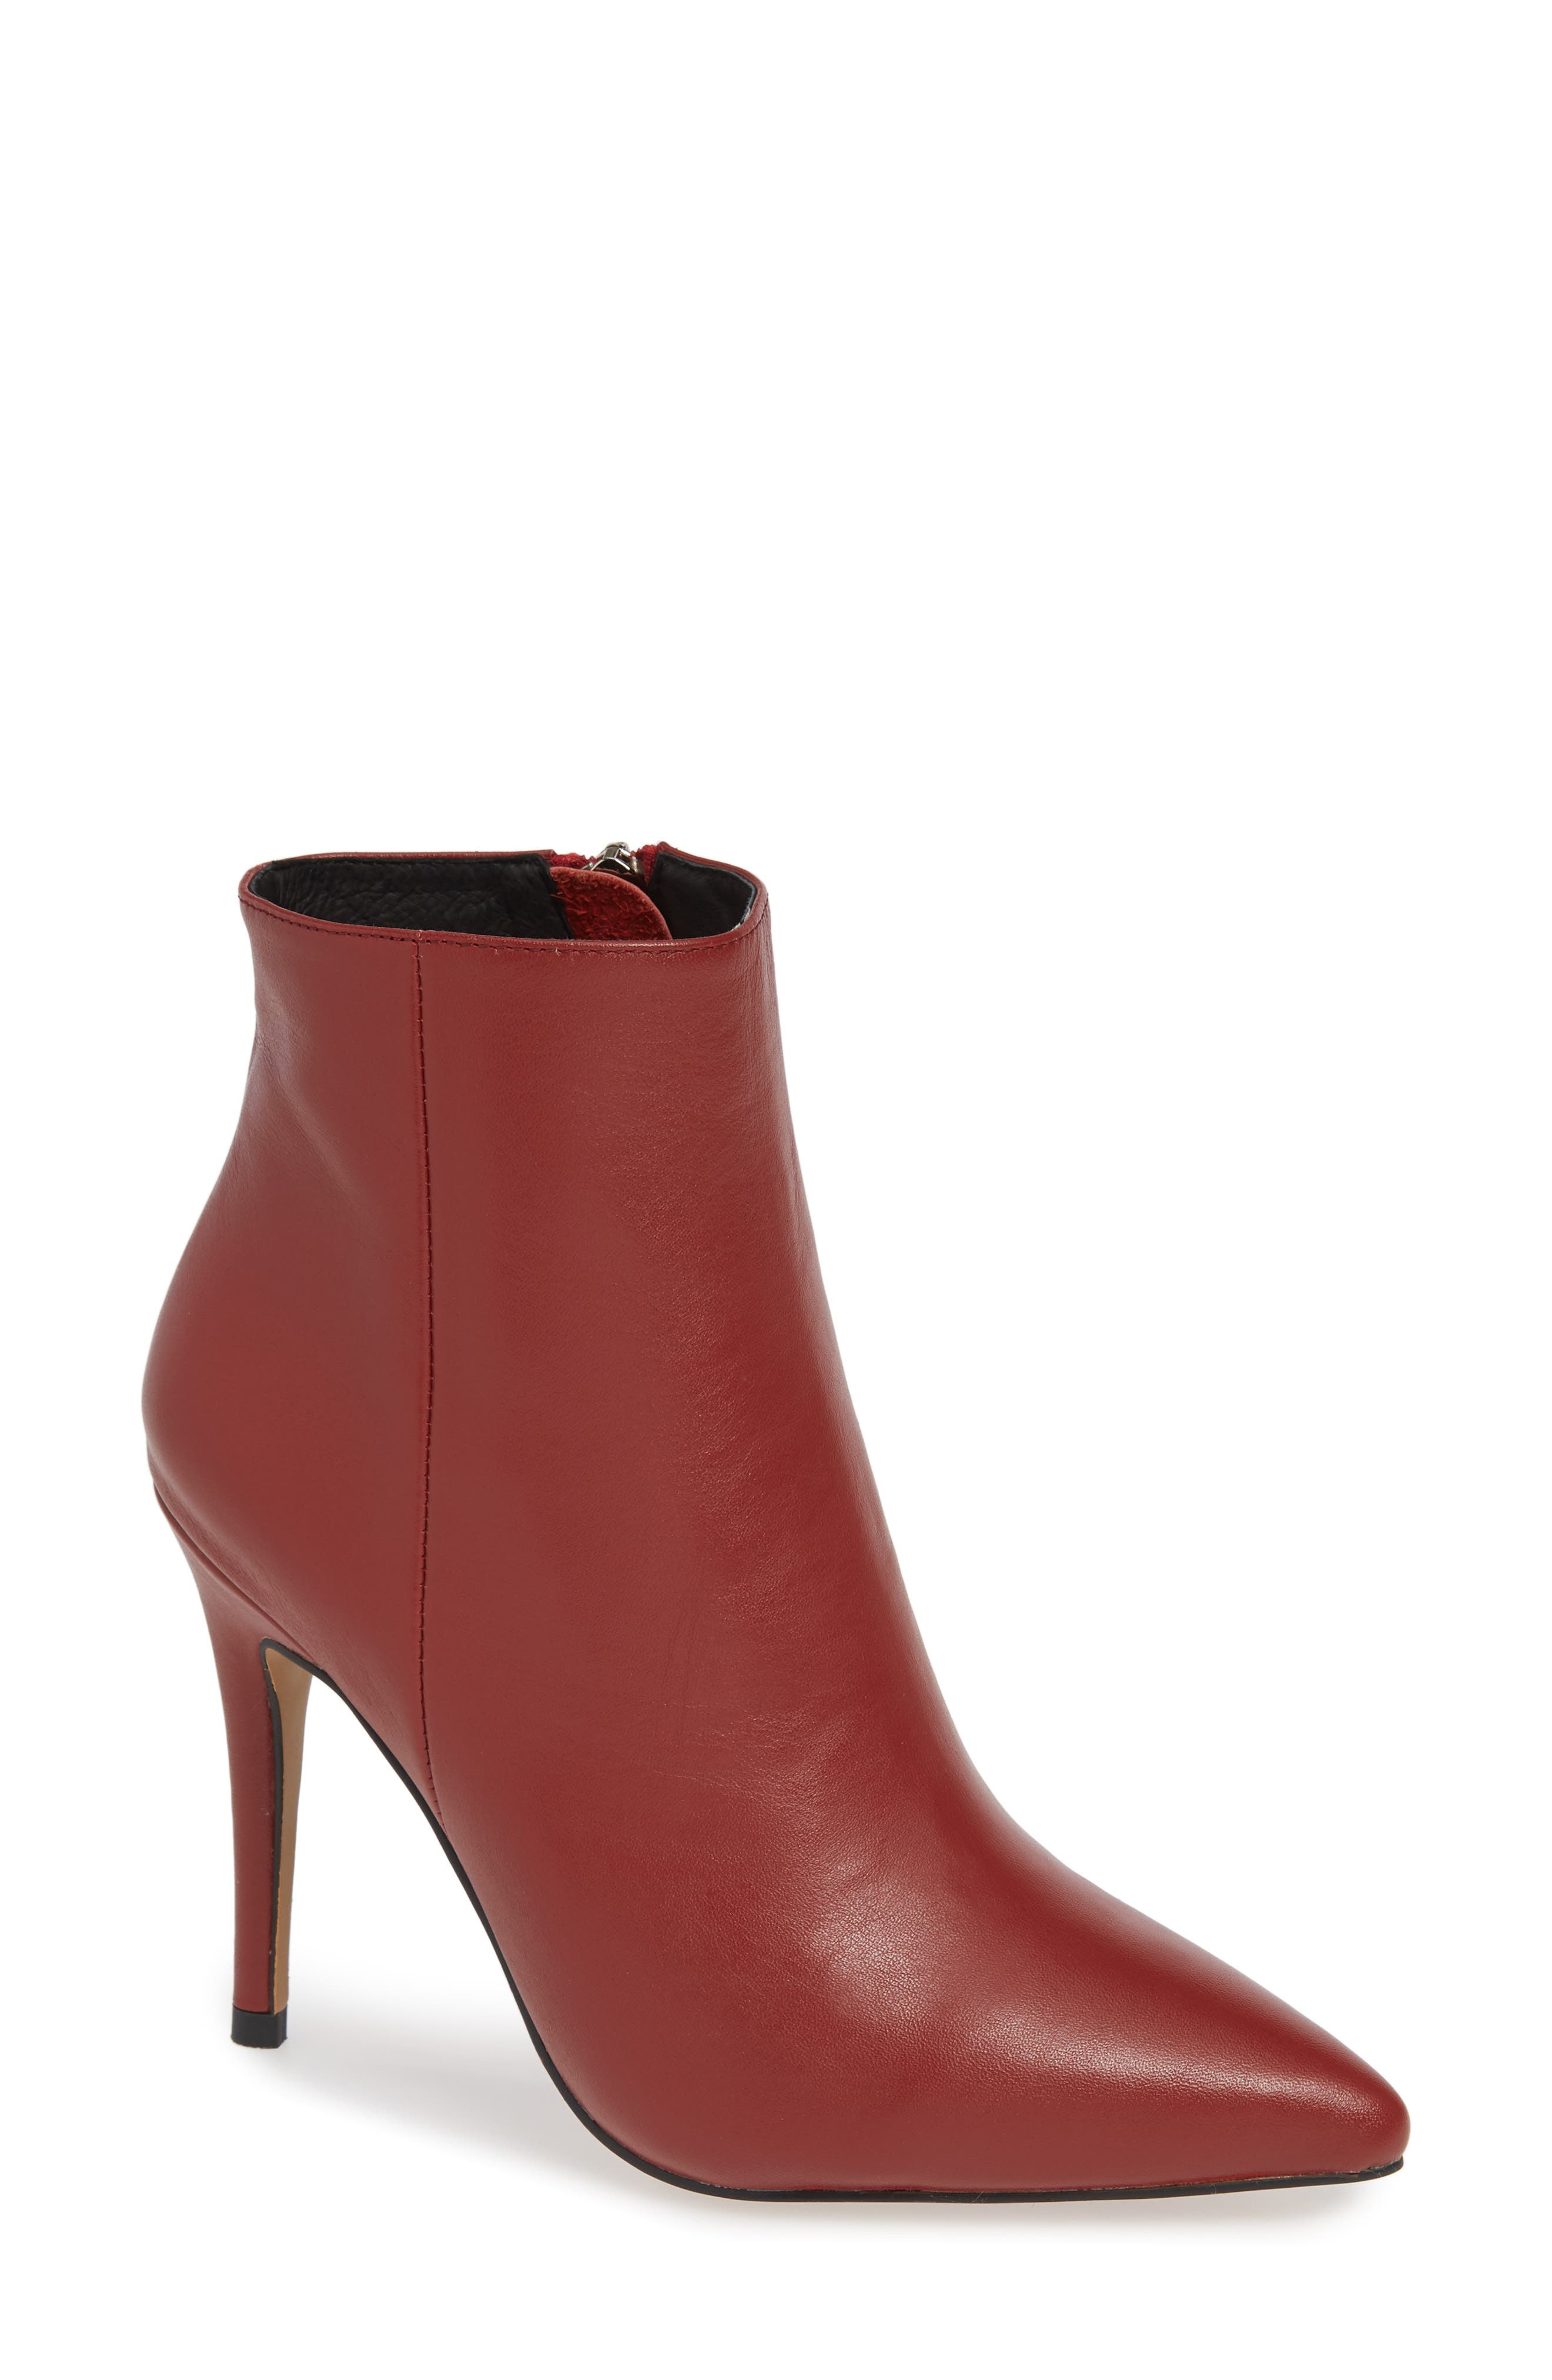 ALIAS MAE Tally Pointy Toe Bootie in Red Leather